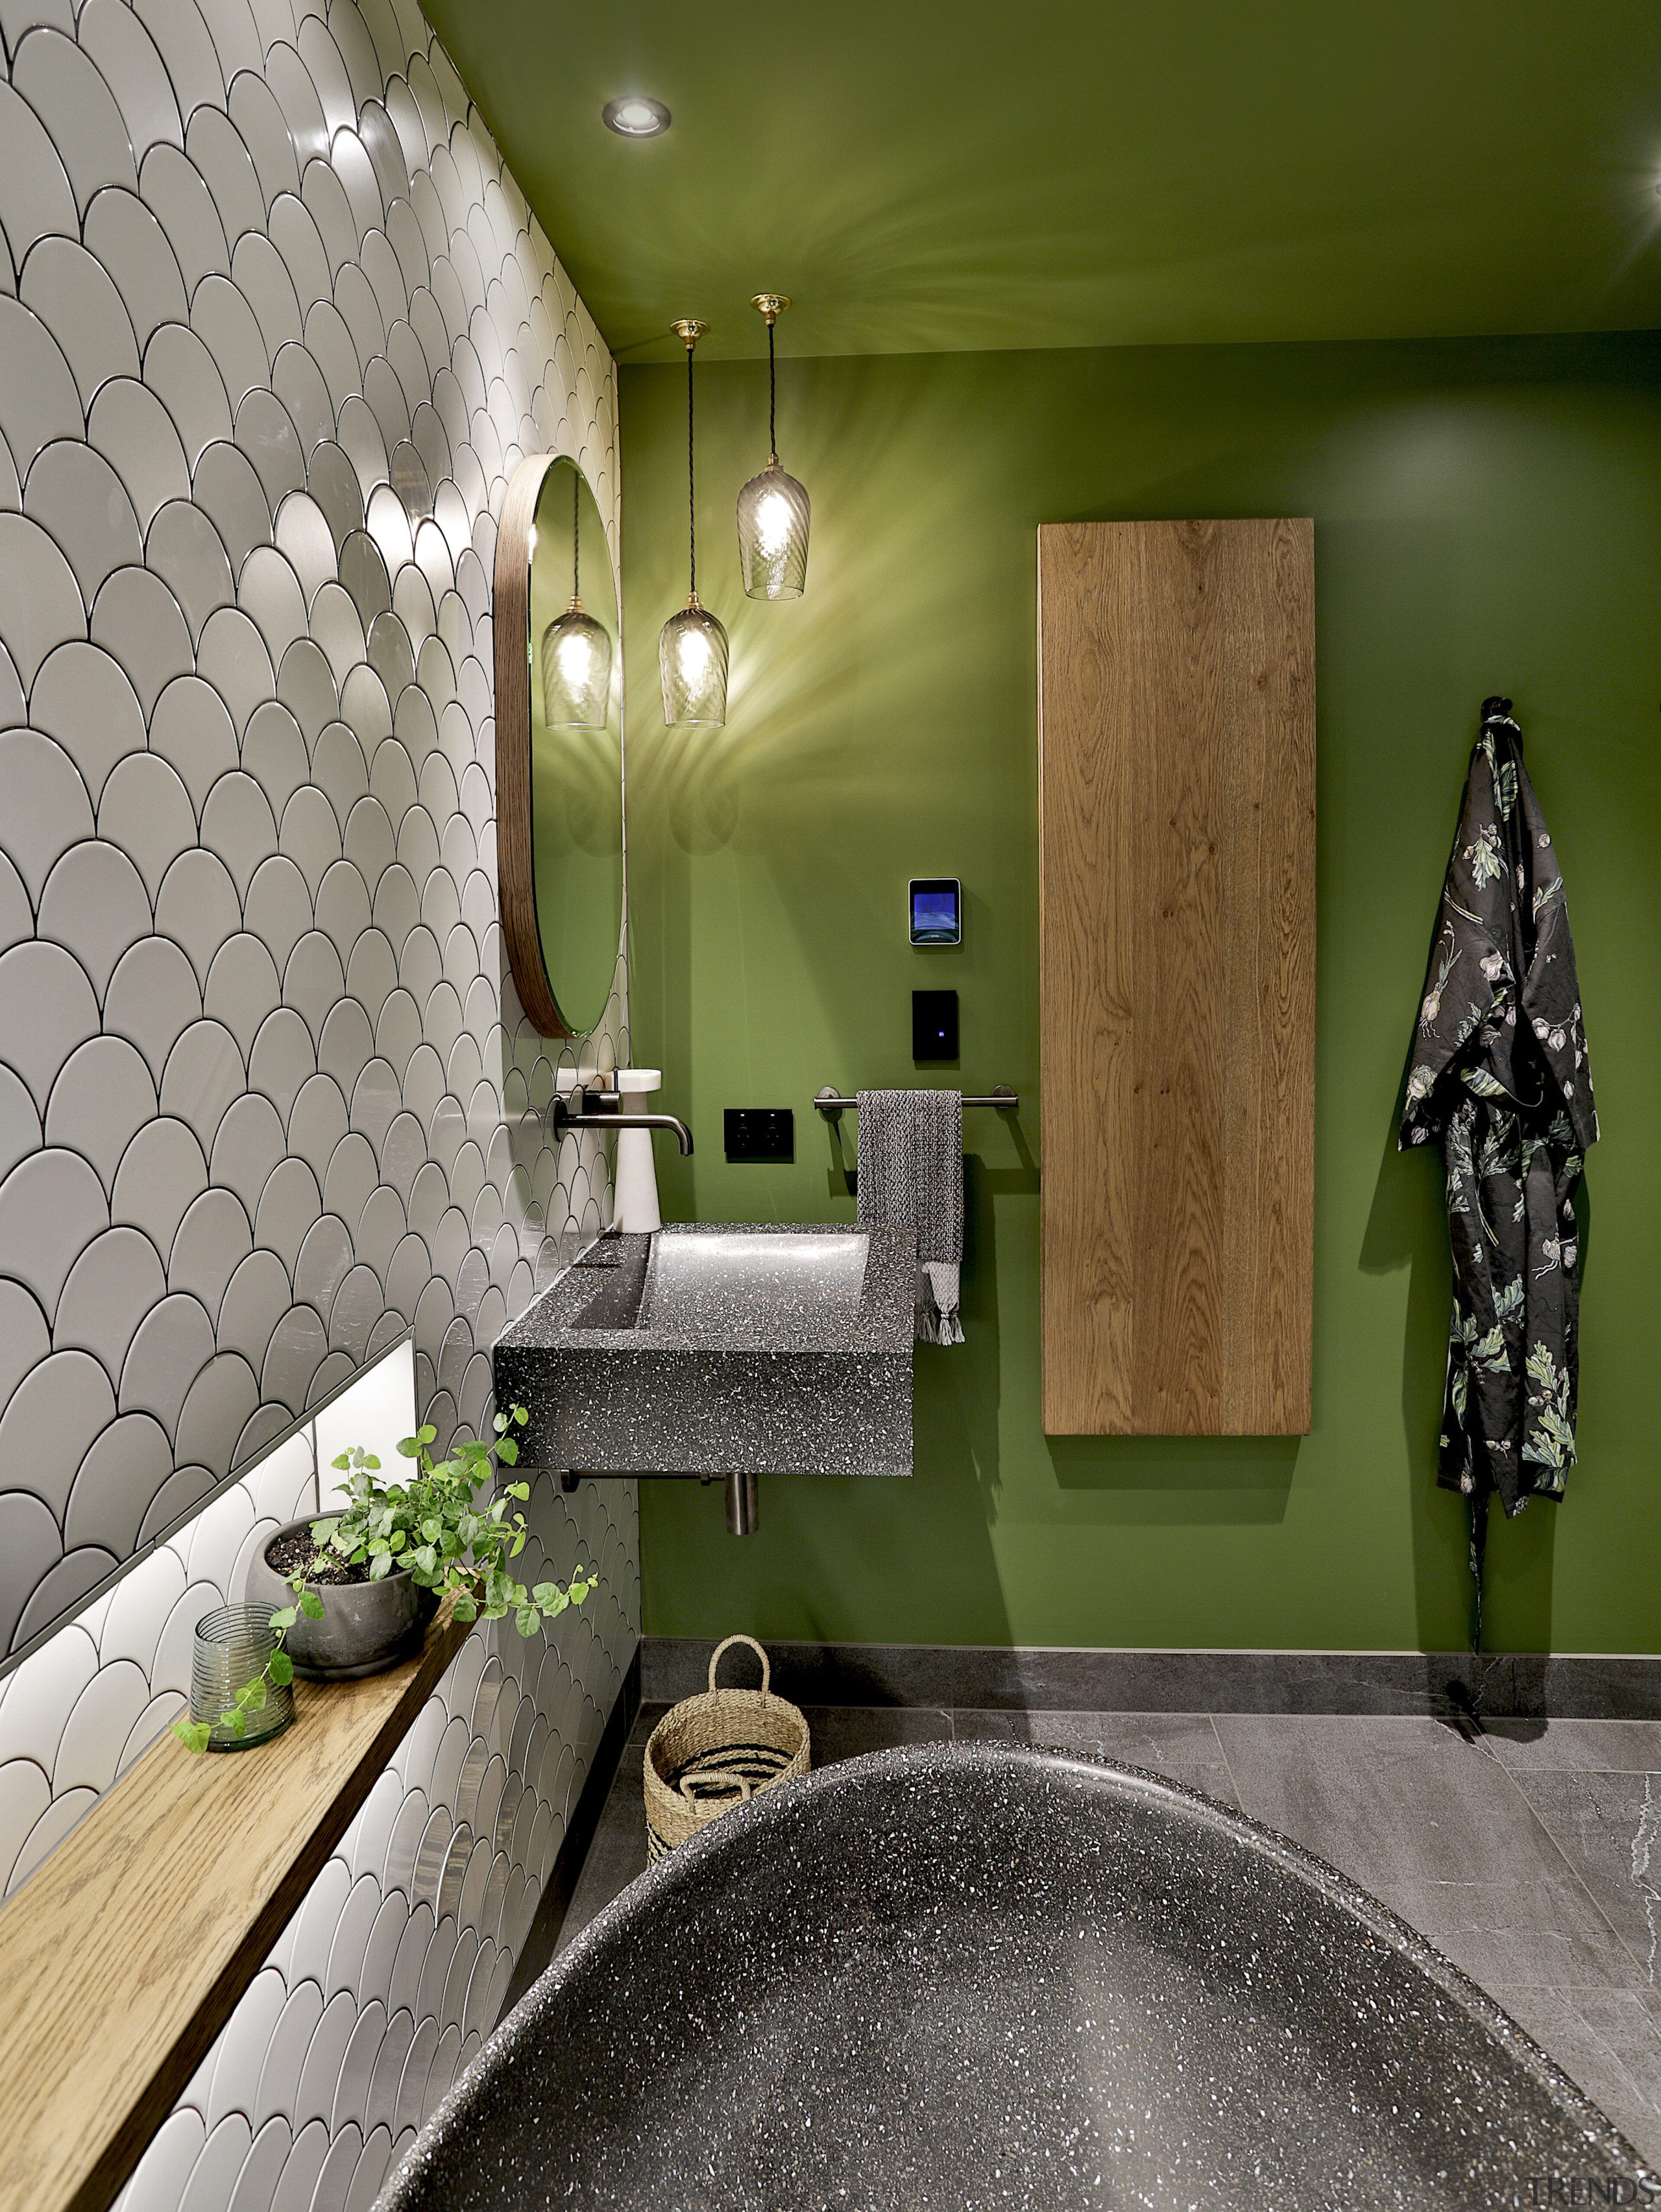 """""""I suggested adding a deep tone of green architecture, bathroom, building, ceiling, design, floor, flooring, green, home, house, interior design, plumbing fixture, property, real estate, room, tile, wall, brown, gray"""